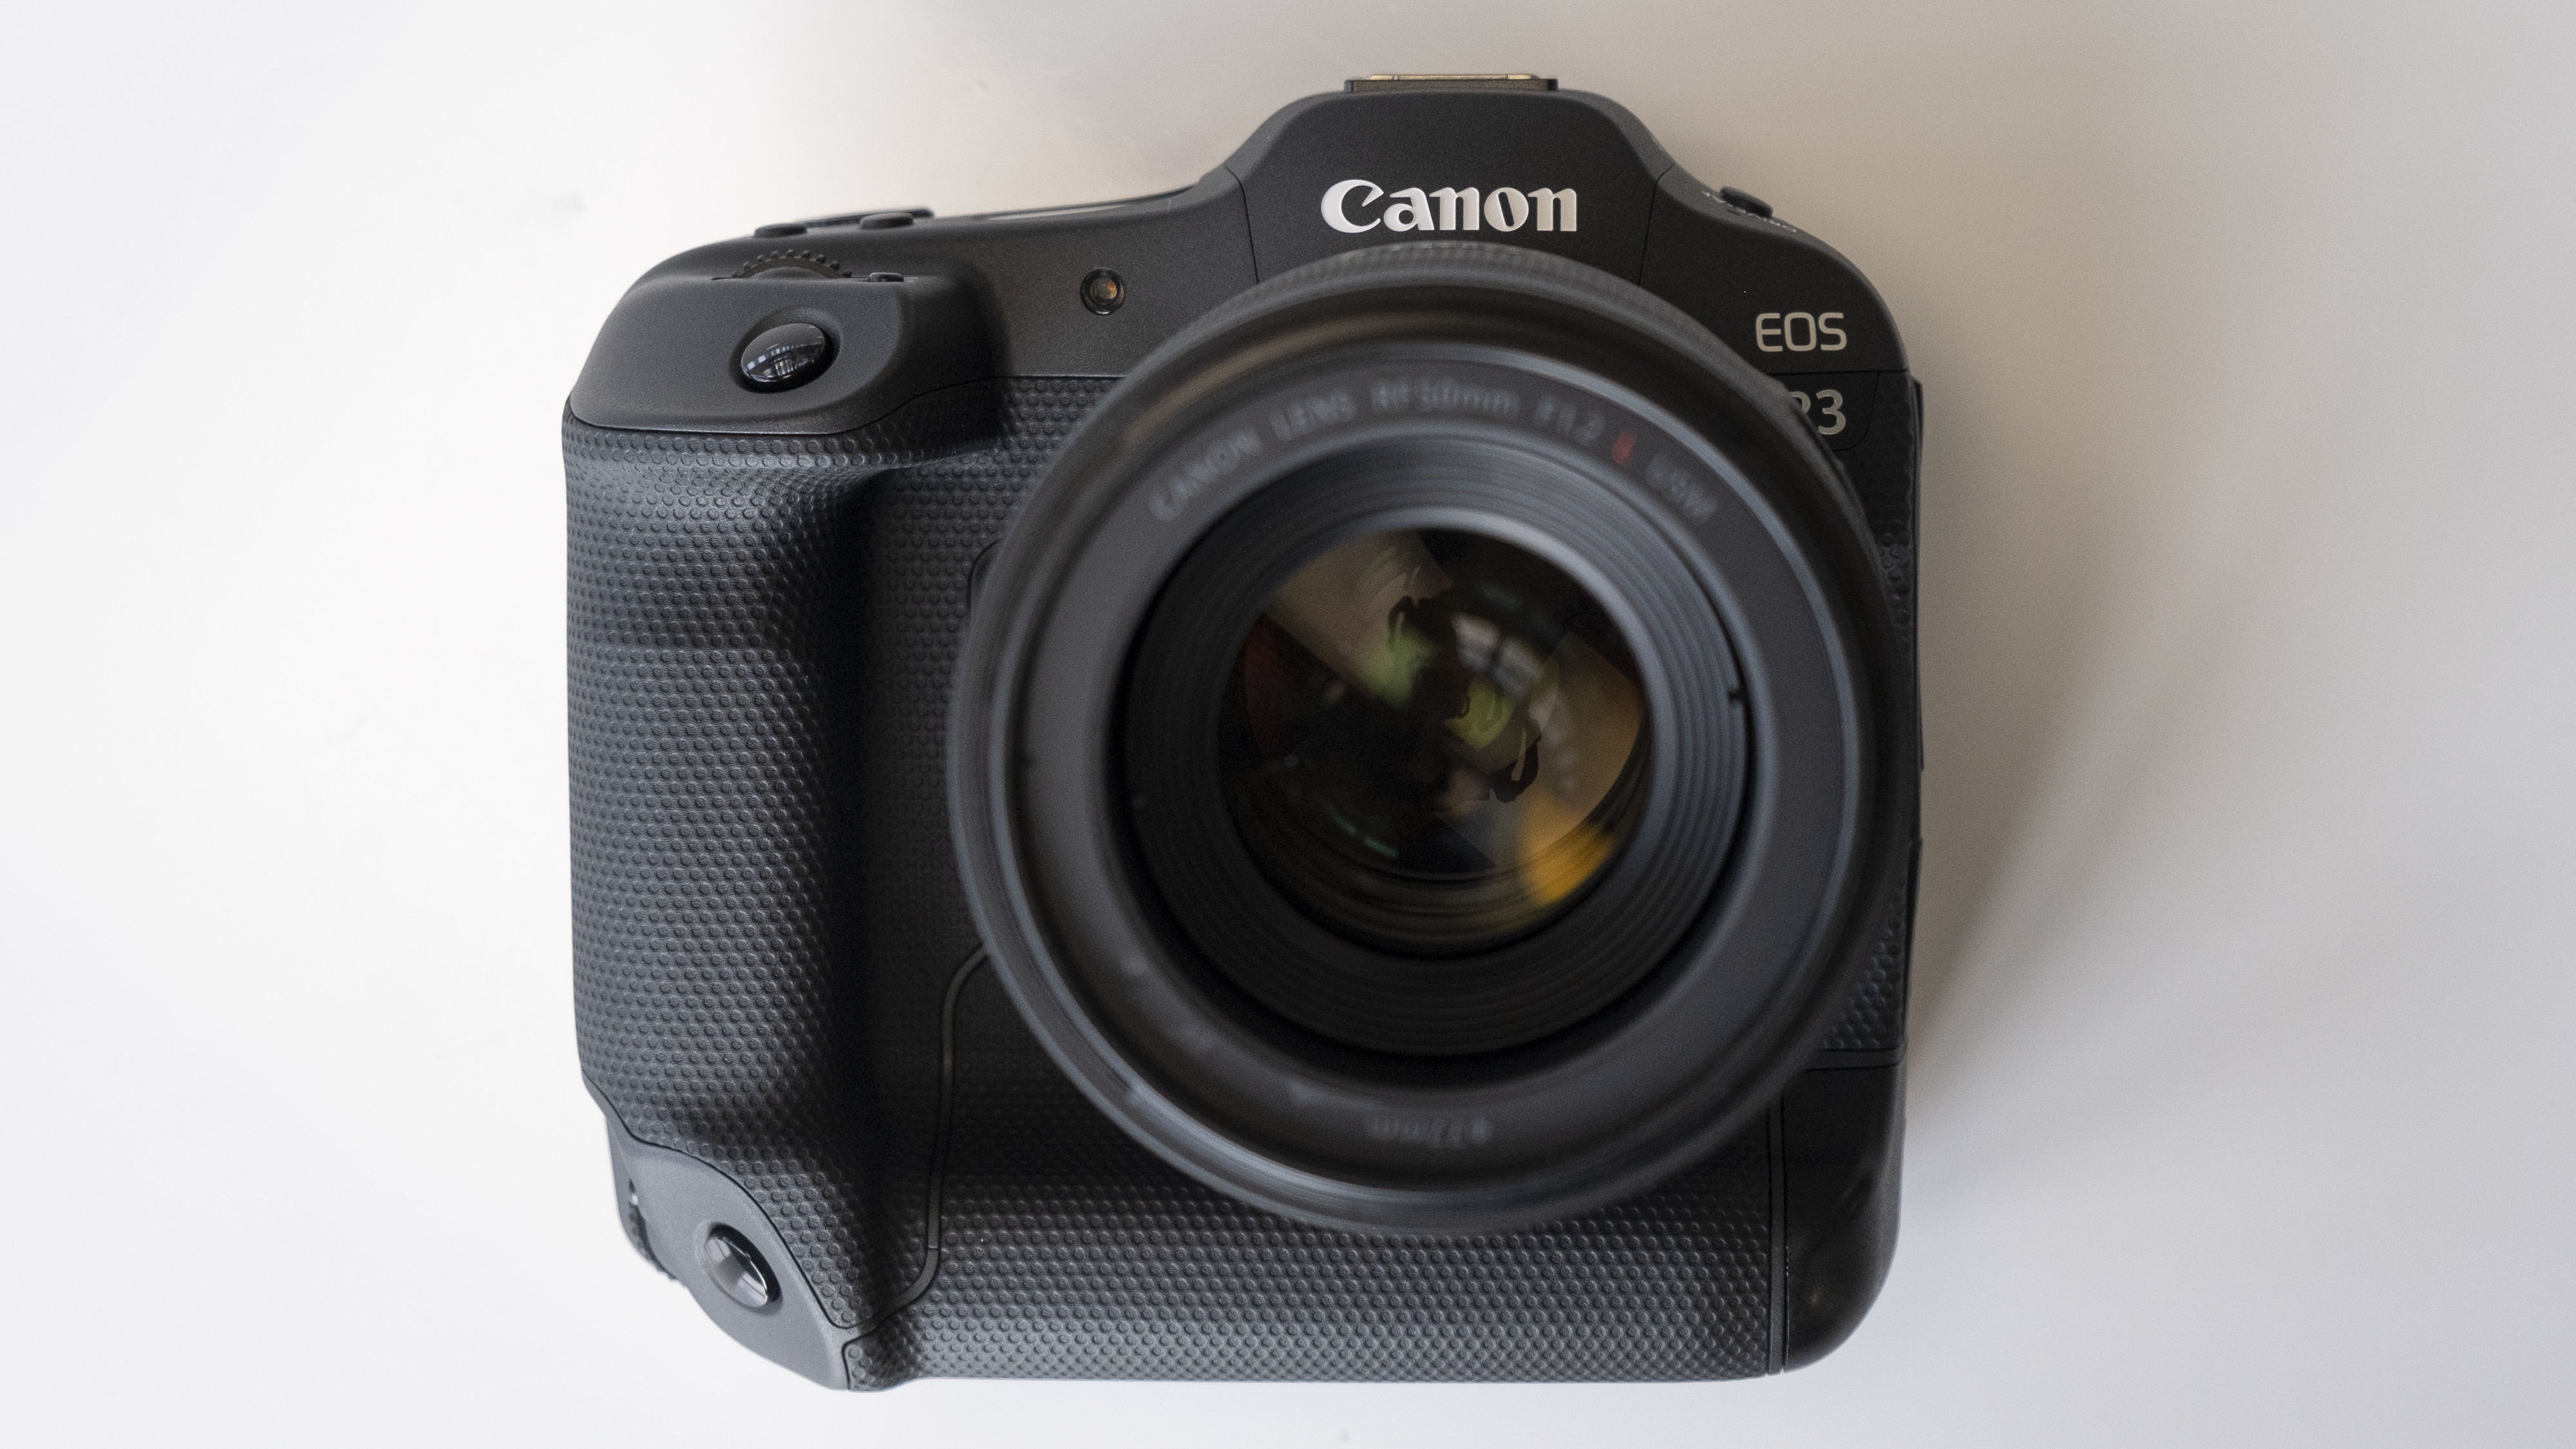 The front of the Canon EOS R3 mirrorless camera